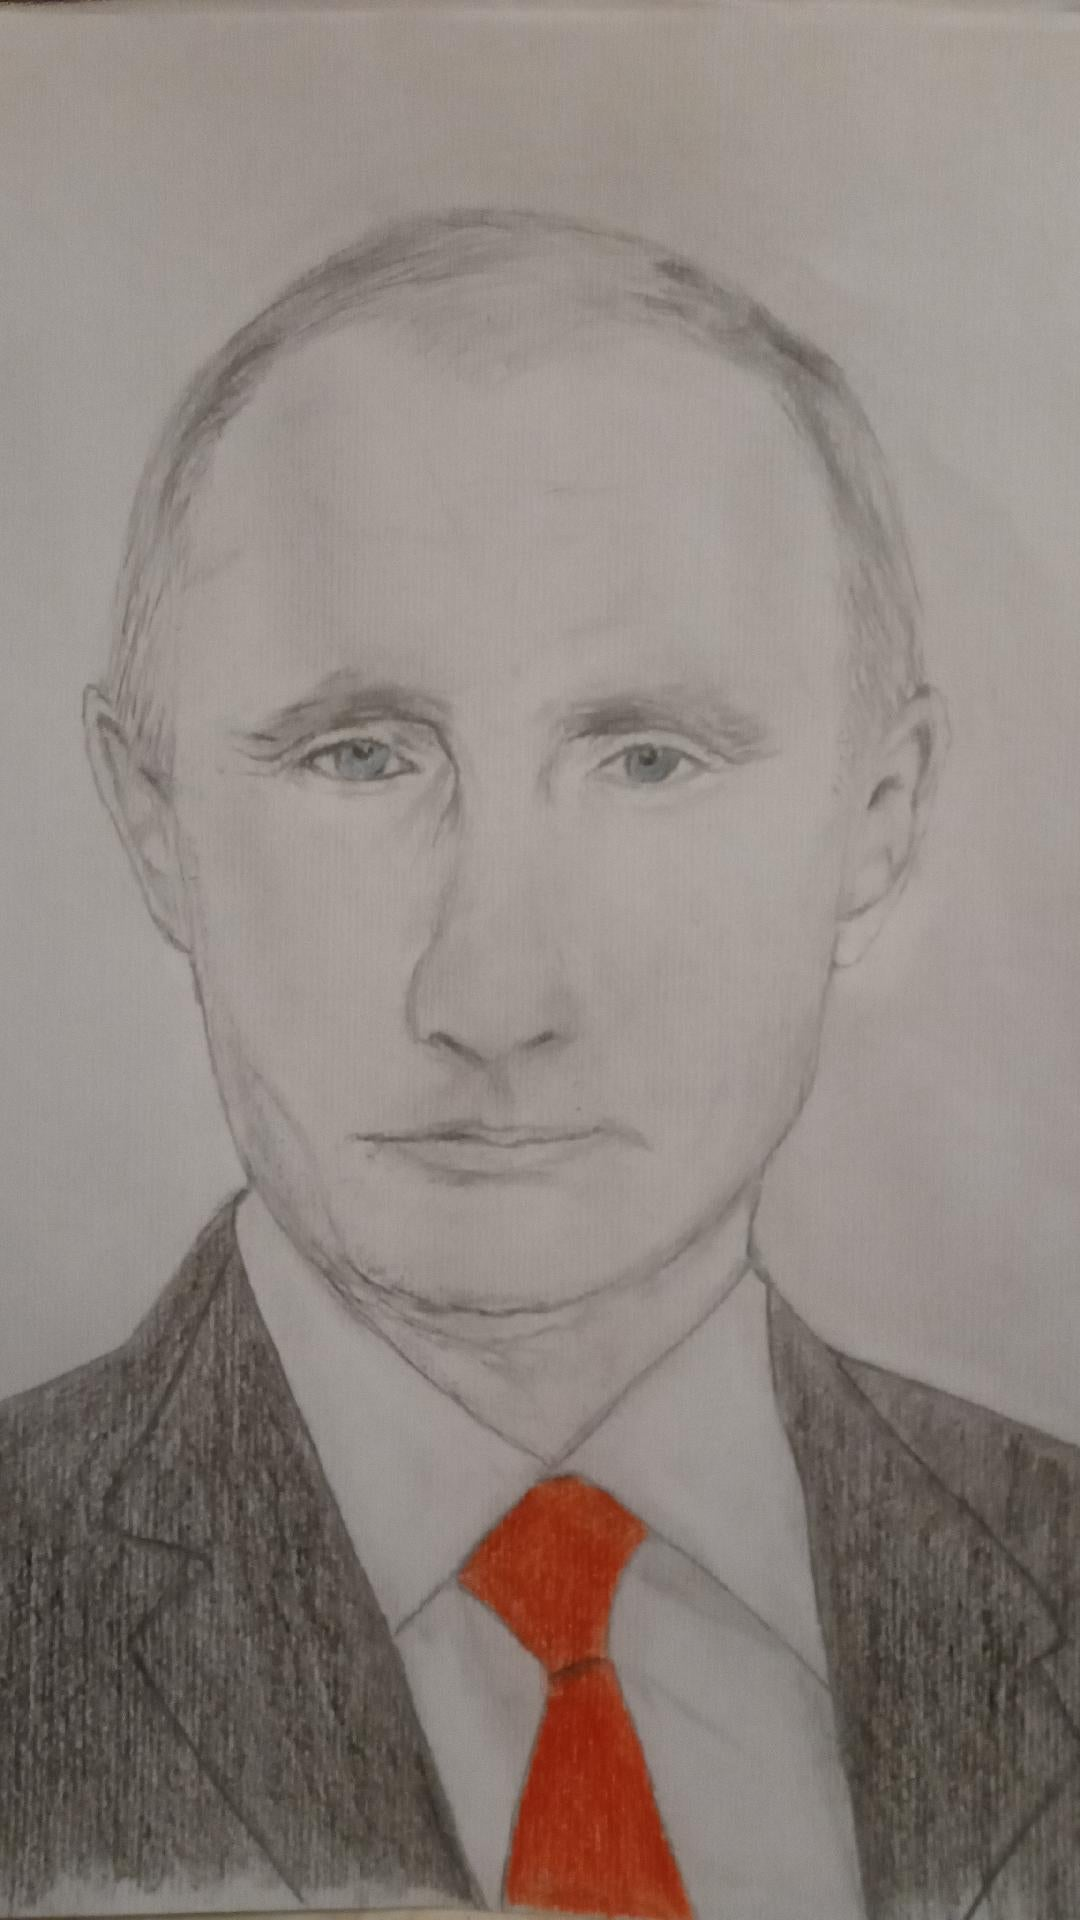 Putin by Caroline Wallis-Newport